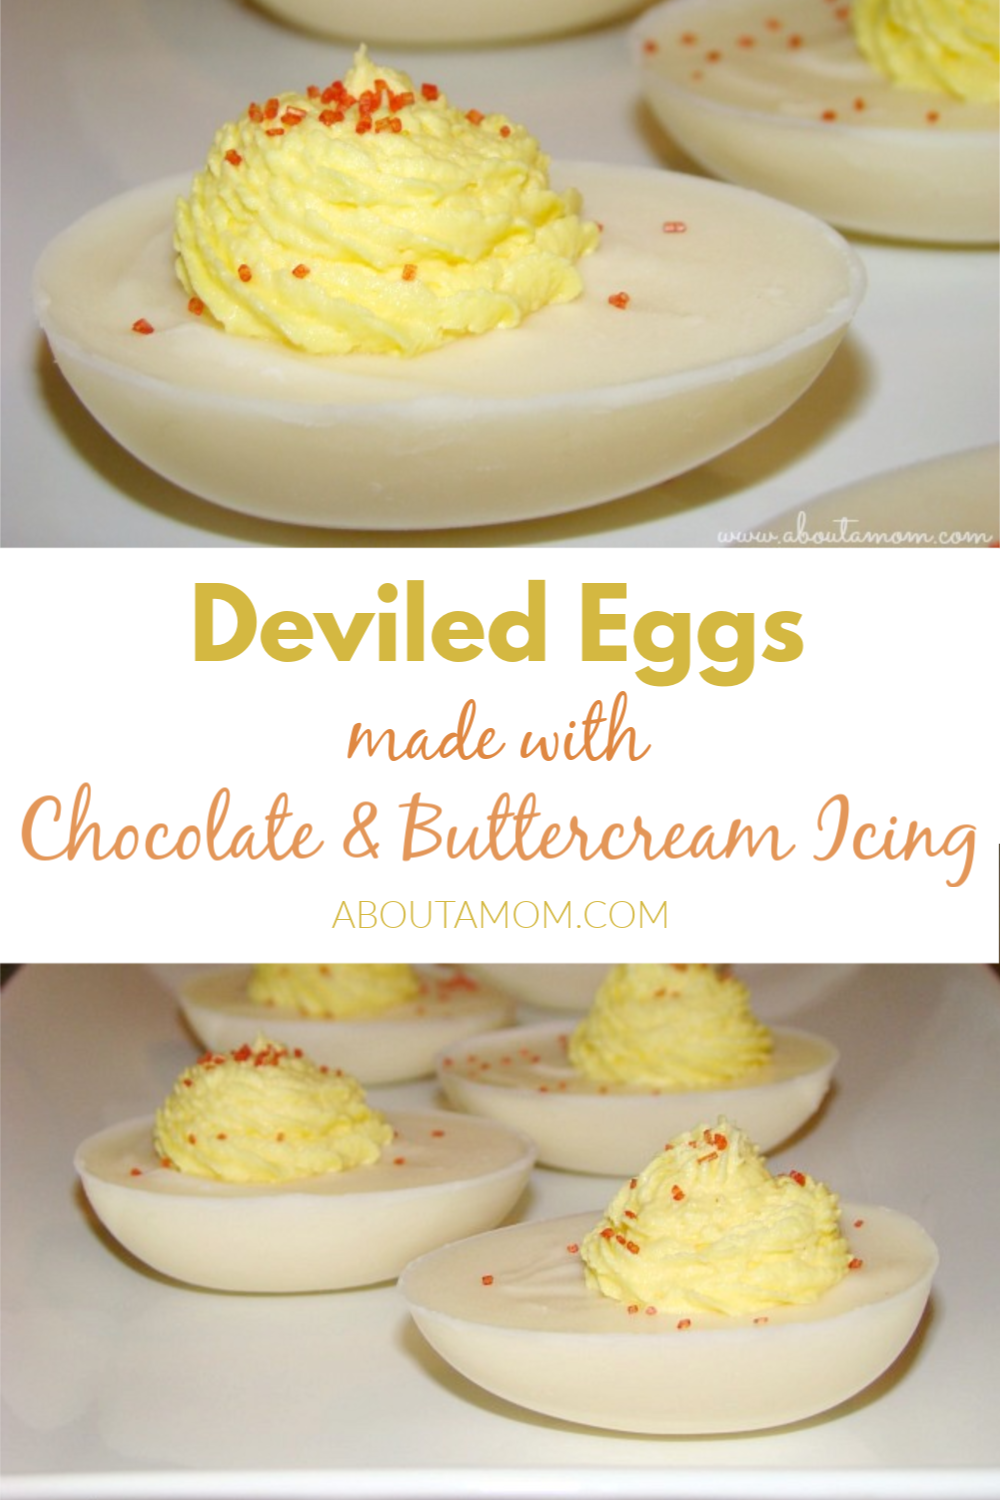 These deviled eggs made from chocolate and buttercream icing are such a fun Easter dessert idea, though it seem more like an April Fool's joke for your guests. It truly is hard to tell that they aren't real eggs.